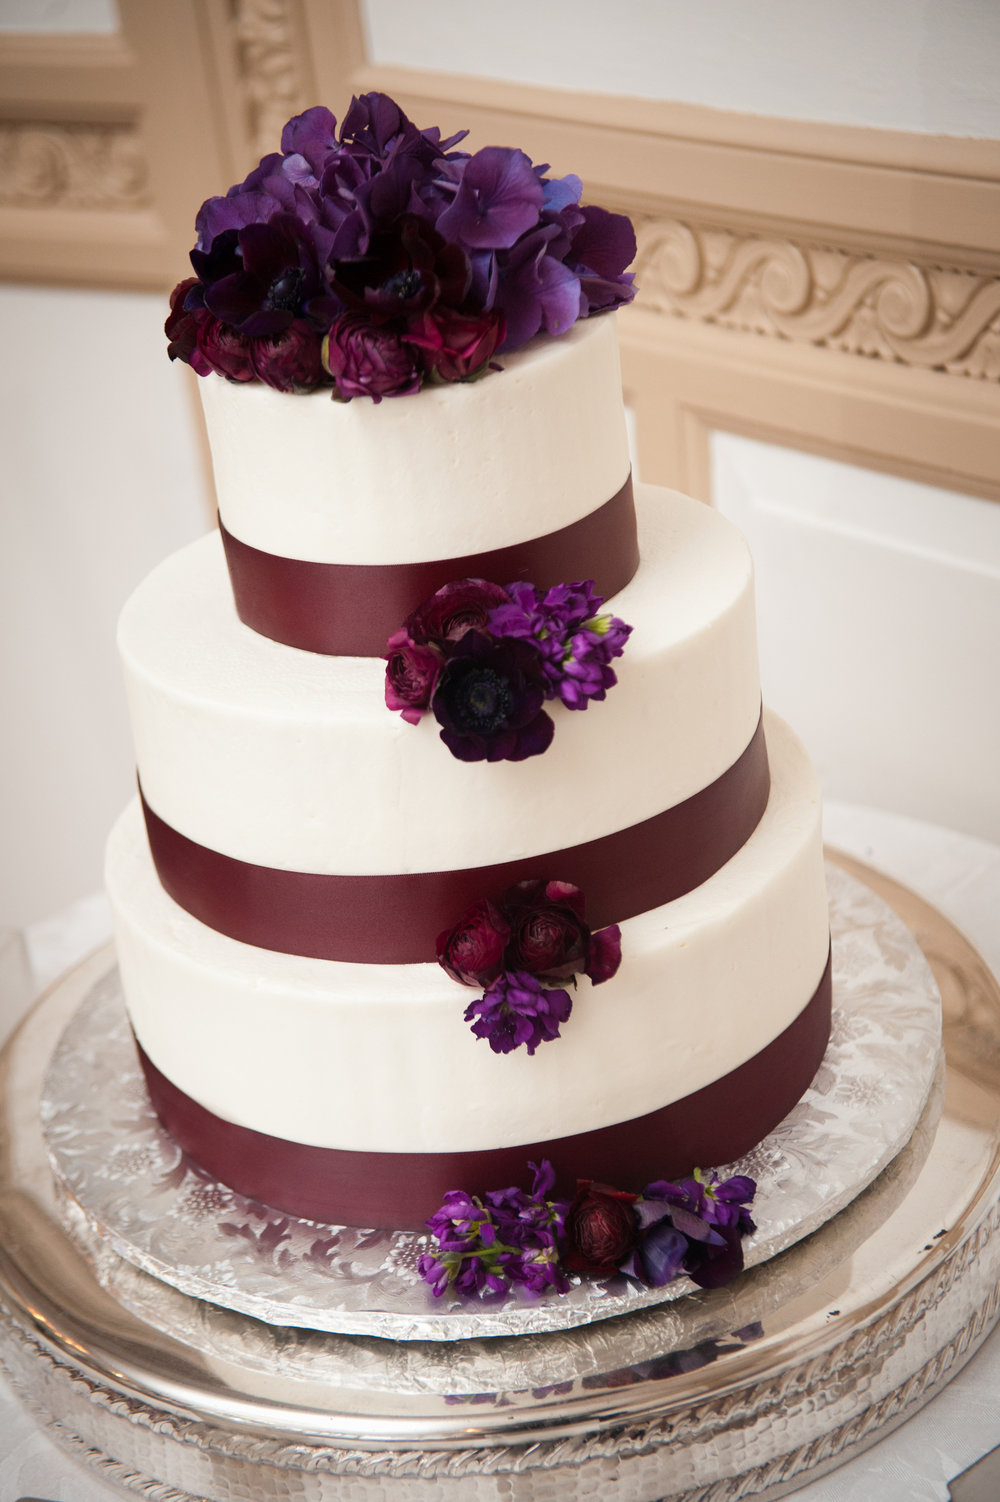 32 Eggplant Accent Wedding Cake Winter Wedding.JPG